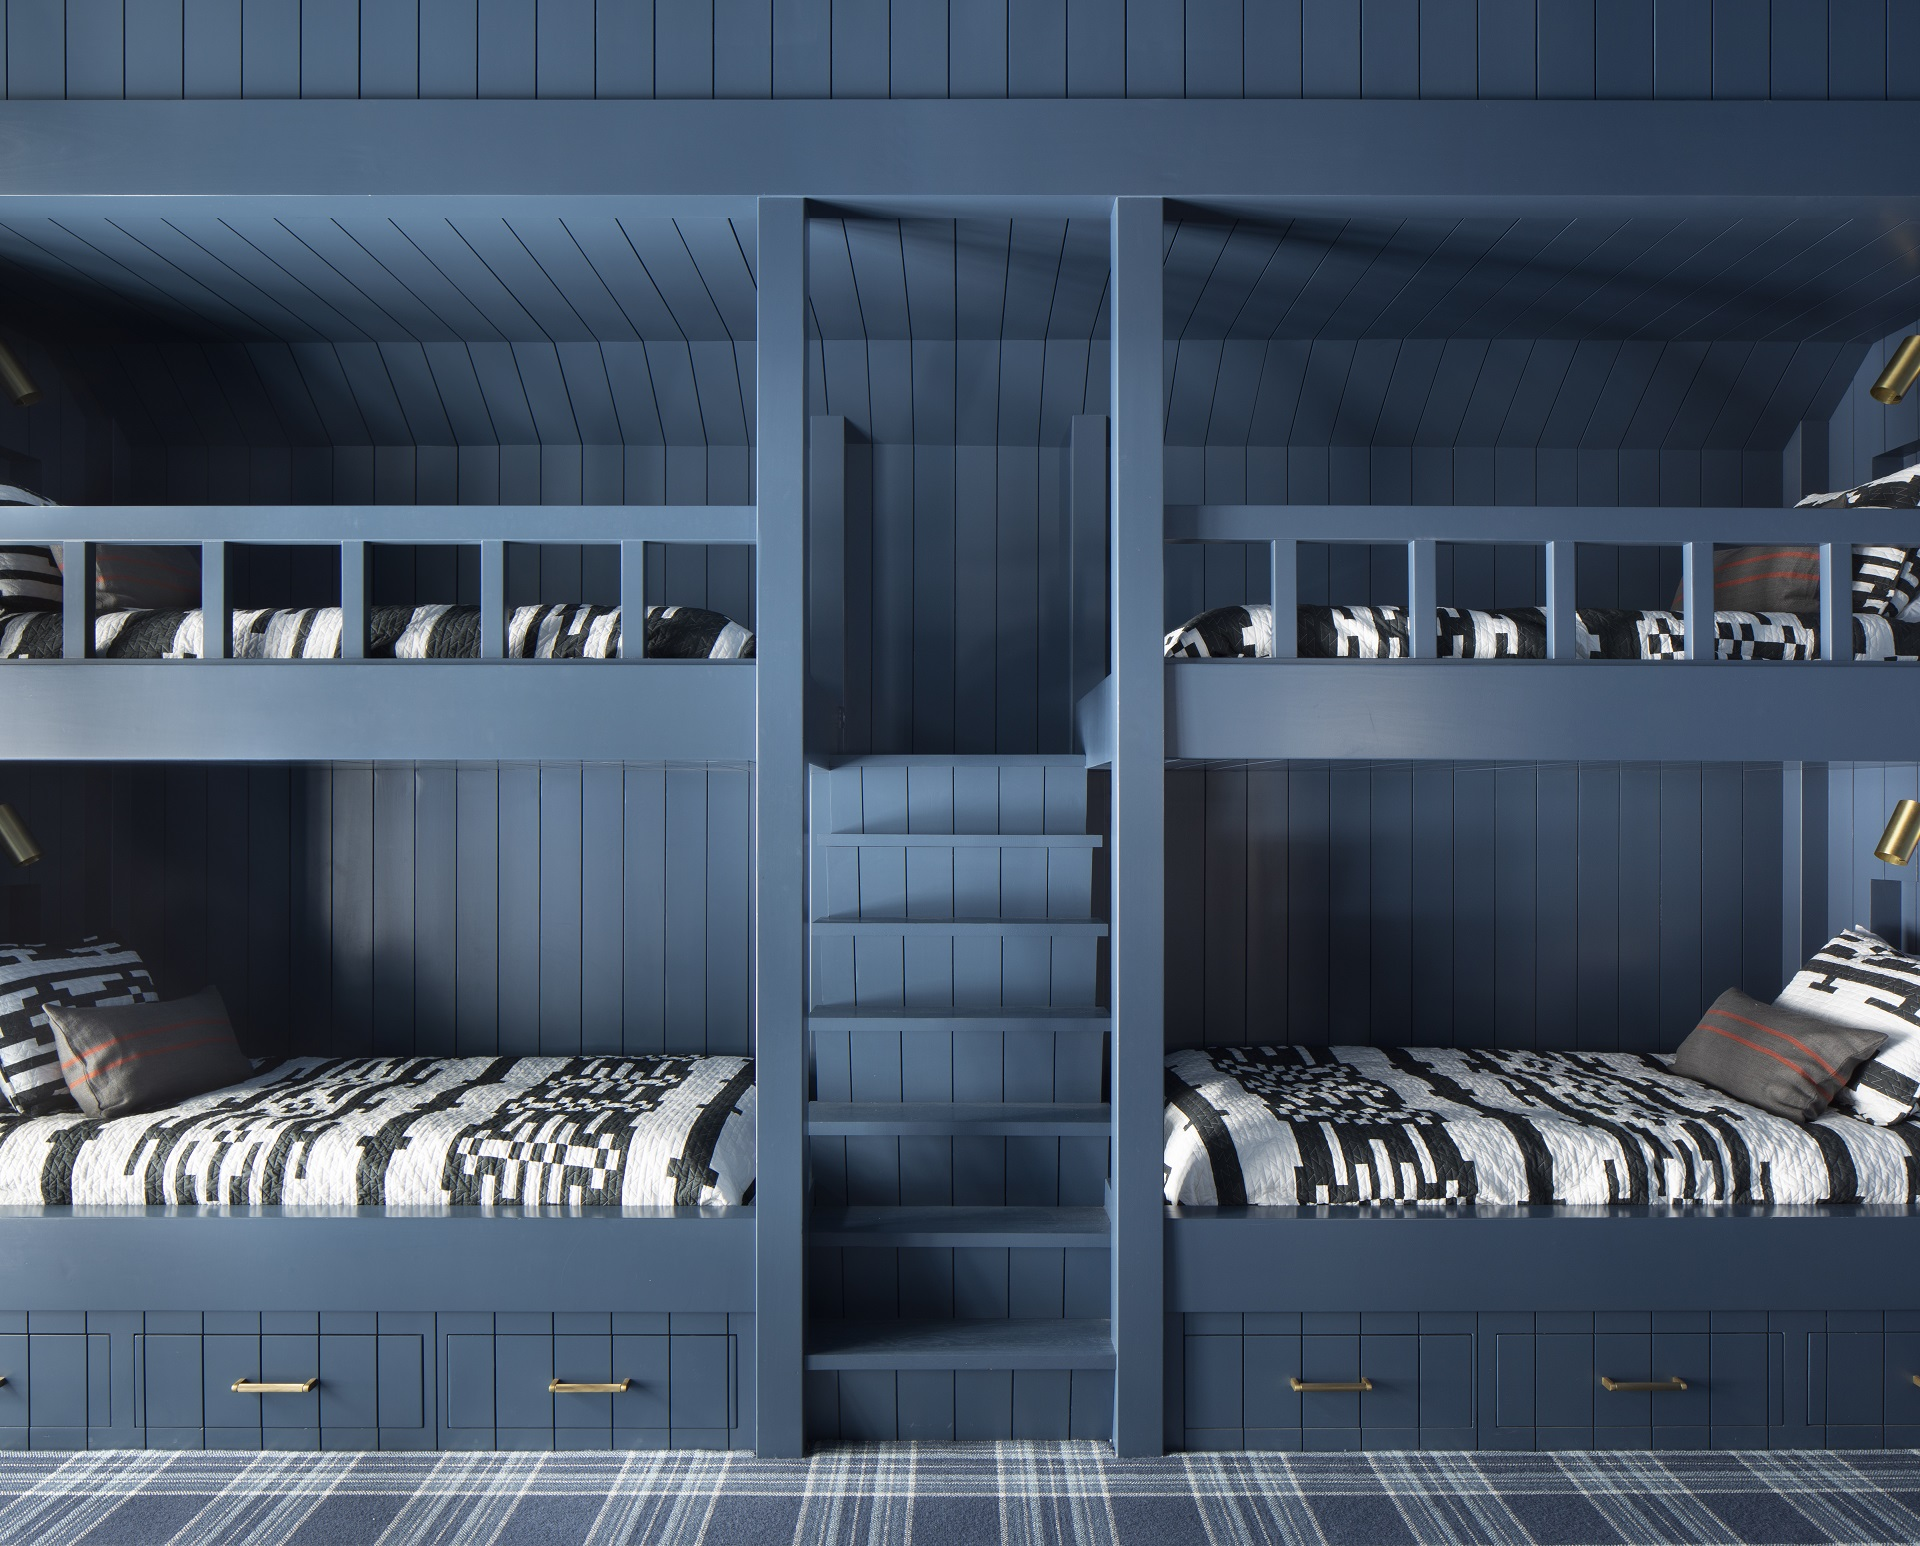 Teal children's bunk beds with black and white print custom bedding